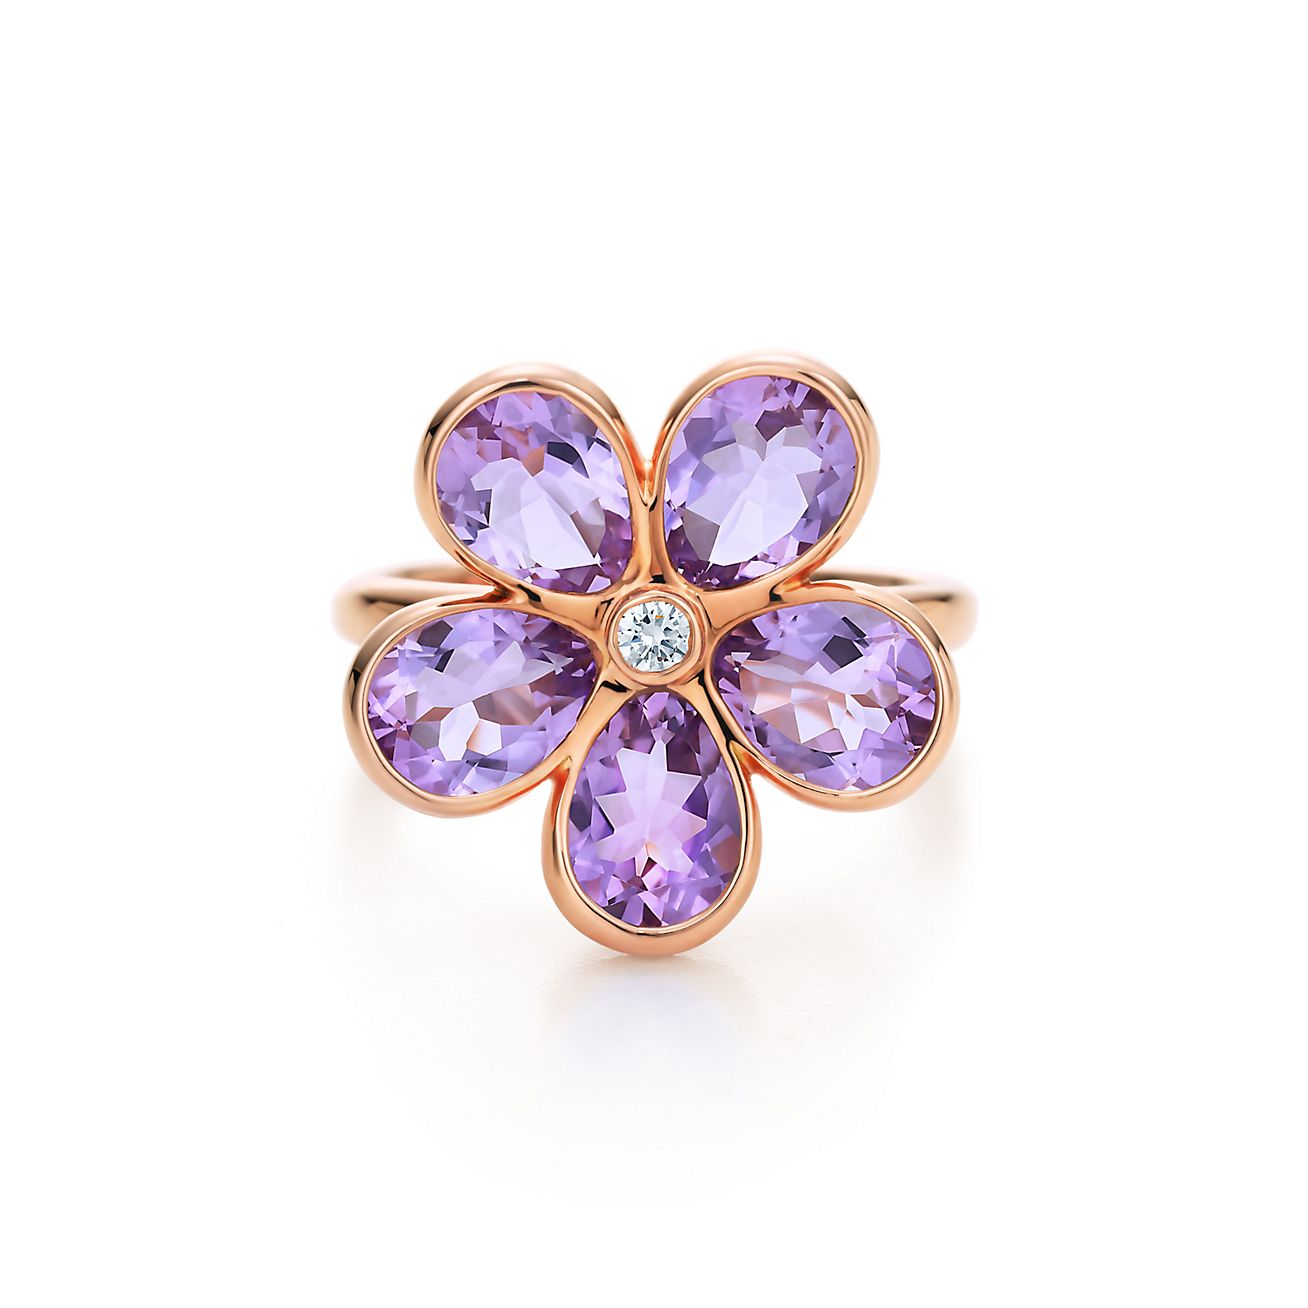 Tiffany Sparklers flower ring in 18k rose gold with amethysts and a diamond